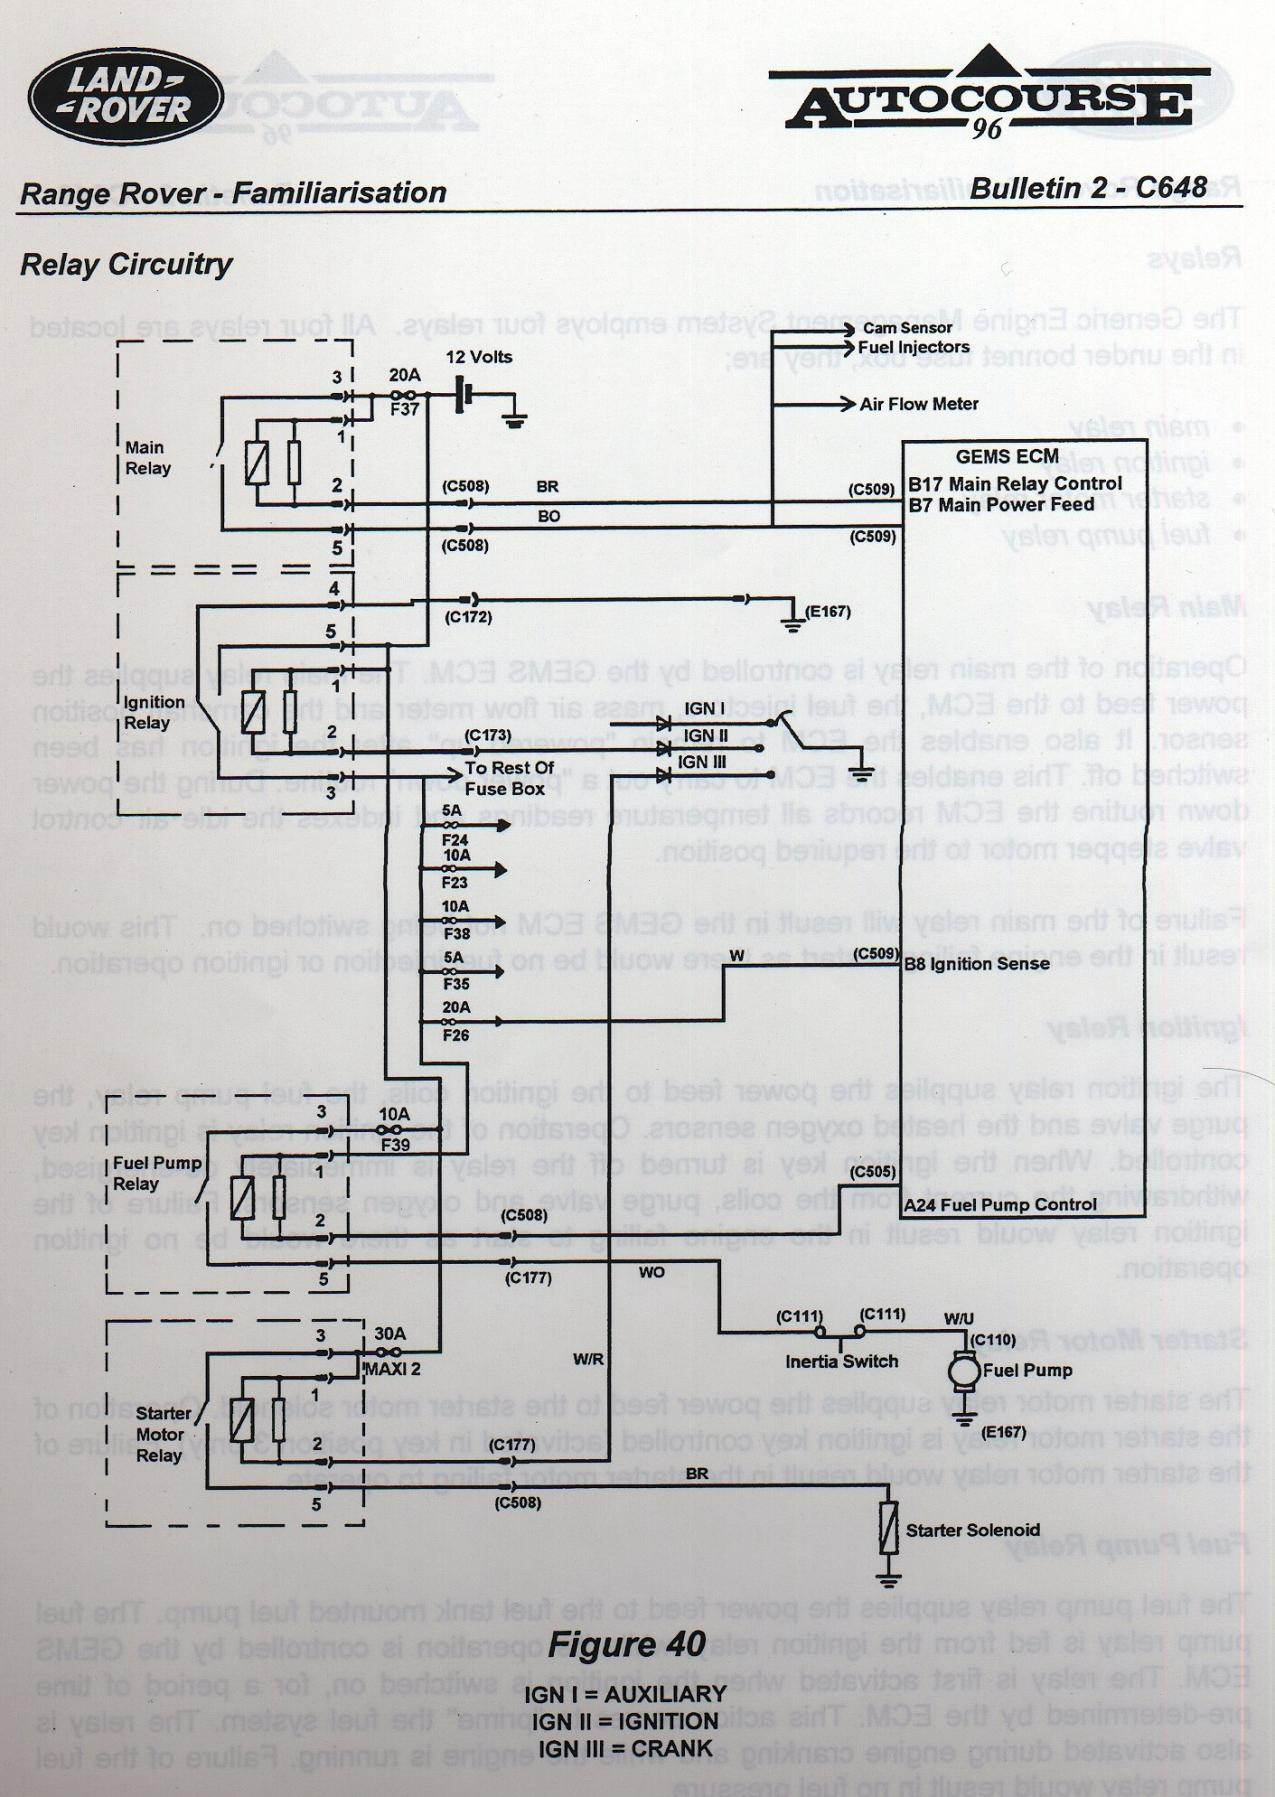 hight resolution of weird fuse box problem p38 page 2 landyzone land rover forum range rover p38 wiring diagram